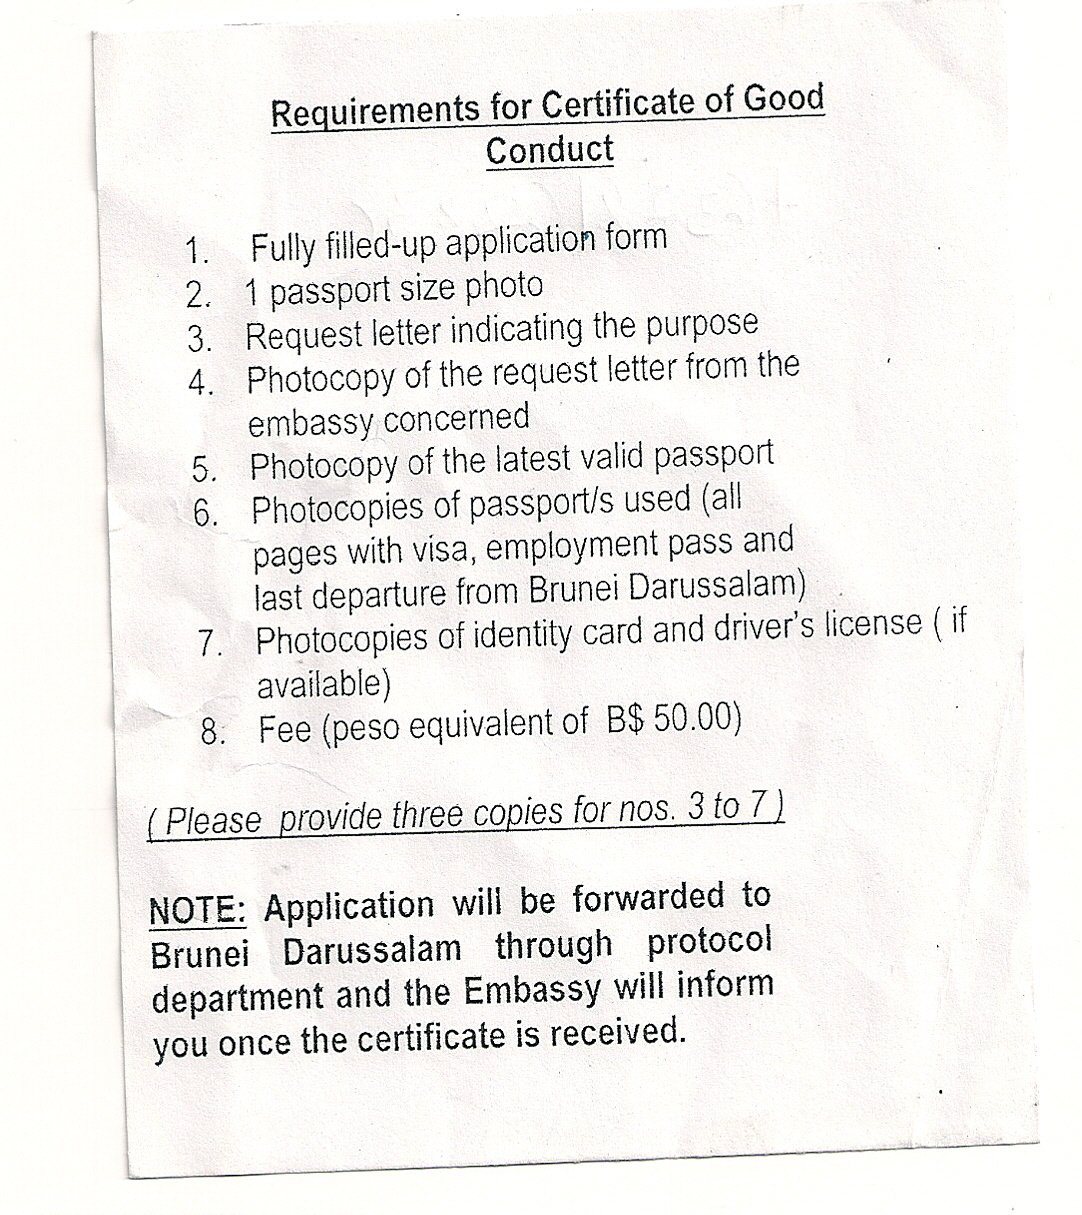 Police Clearance from Brunei - US Embassy and Consulate